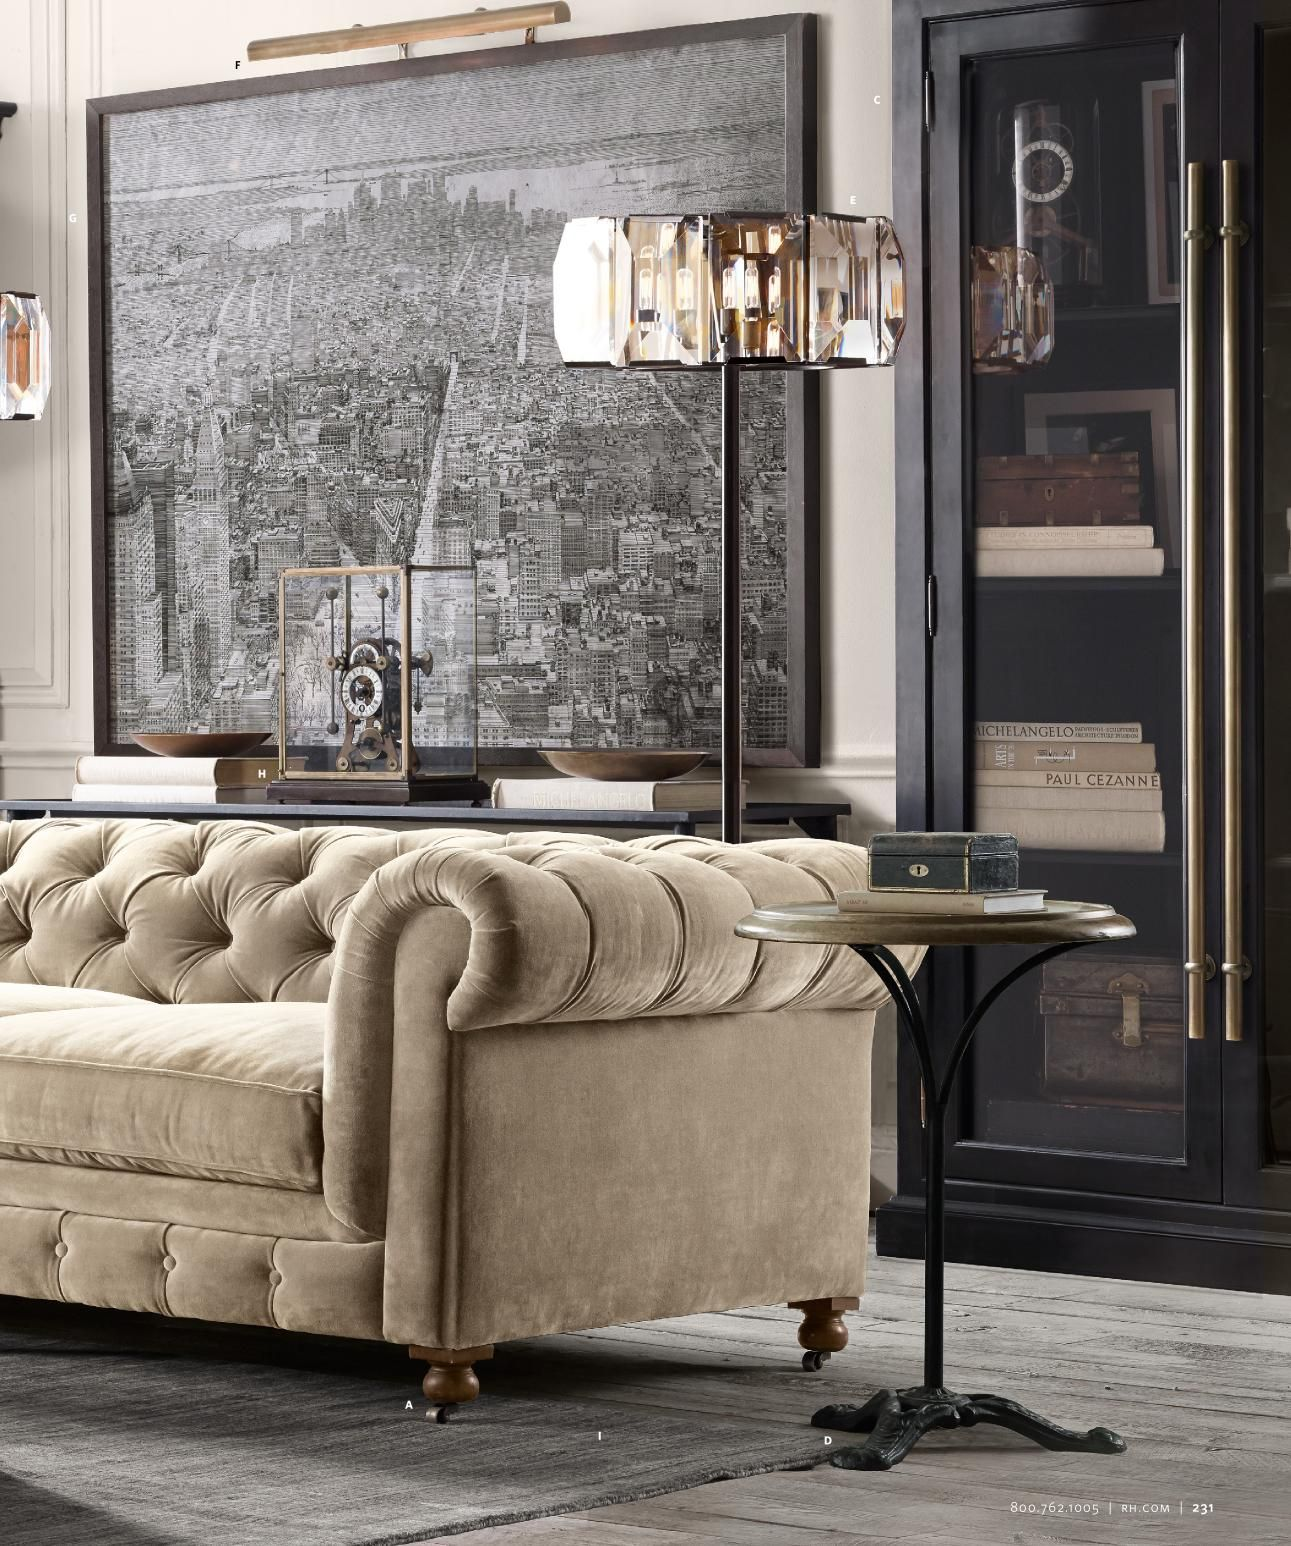 art deco and american industrial style in harmony restoration hardware source books couches. Black Bedroom Furniture Sets. Home Design Ideas